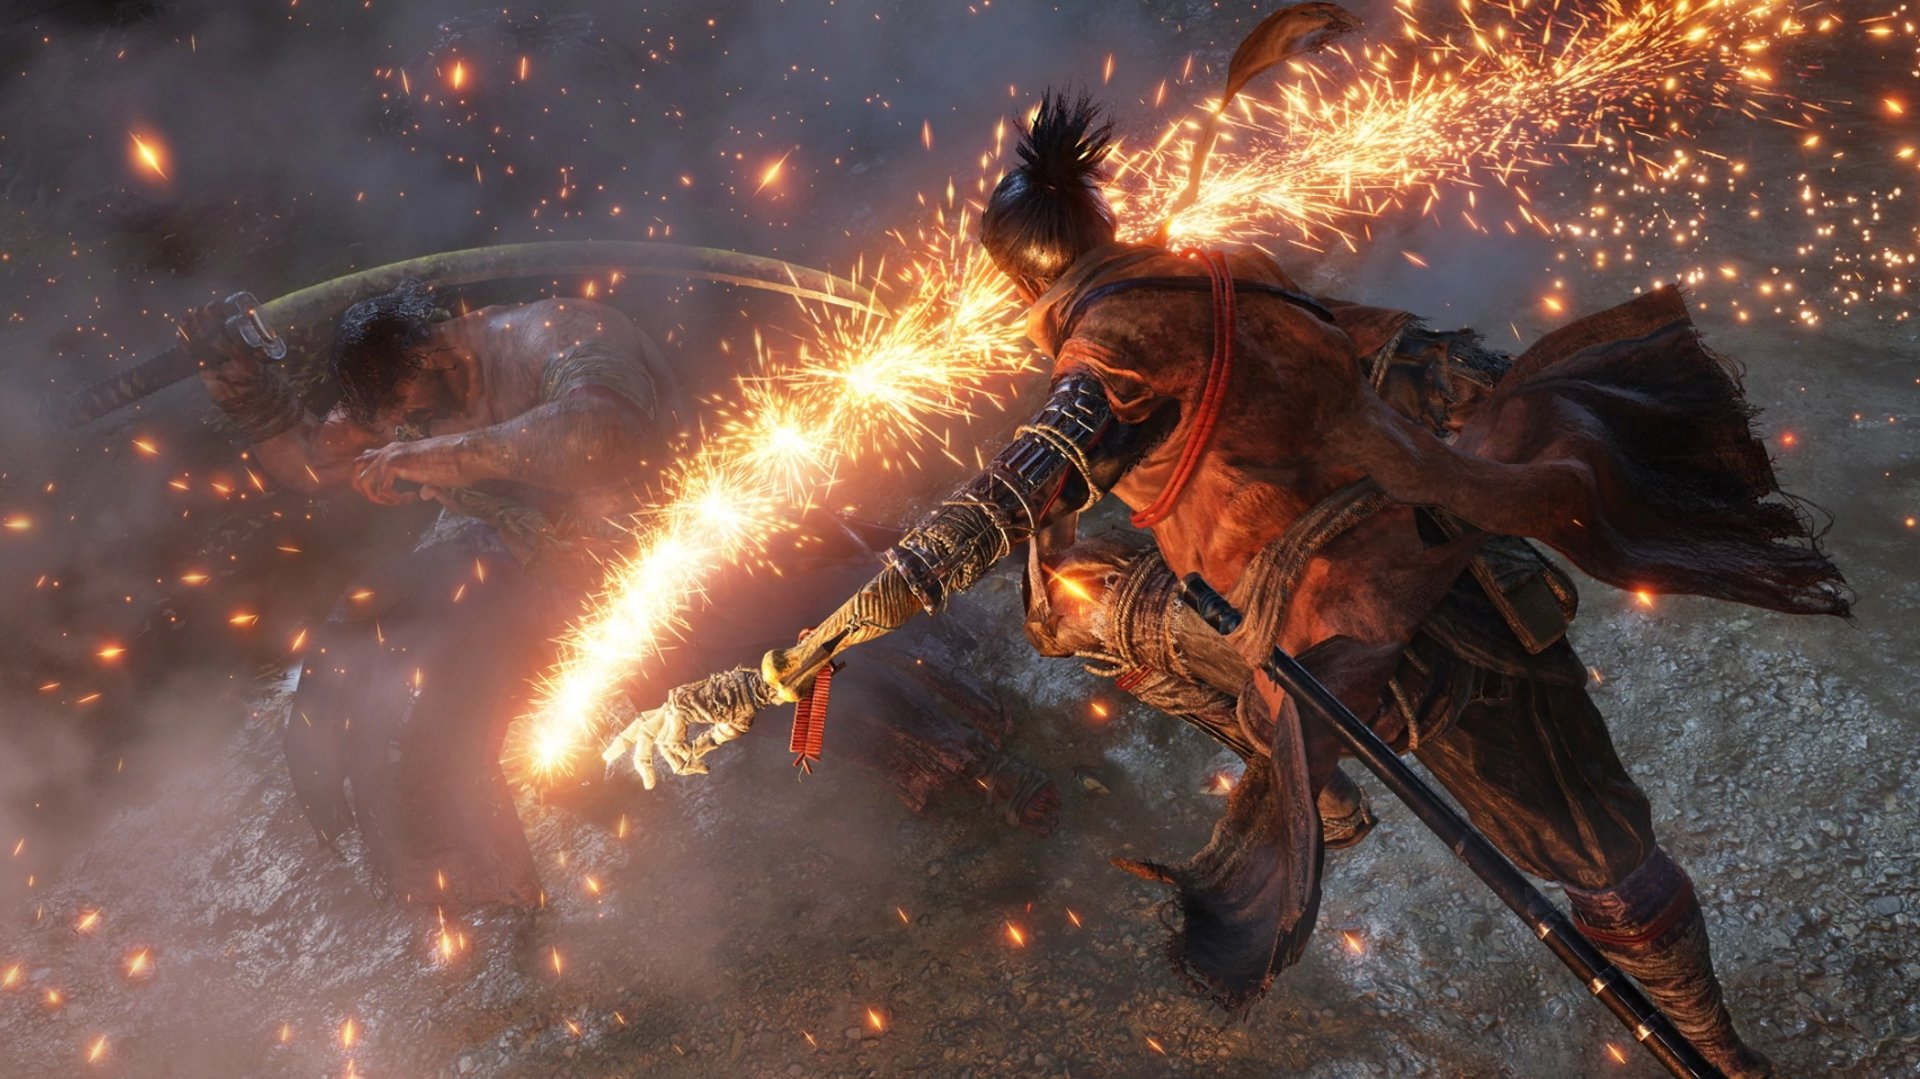 Does Sekiro: Shadows Die Twice have multiplayer?